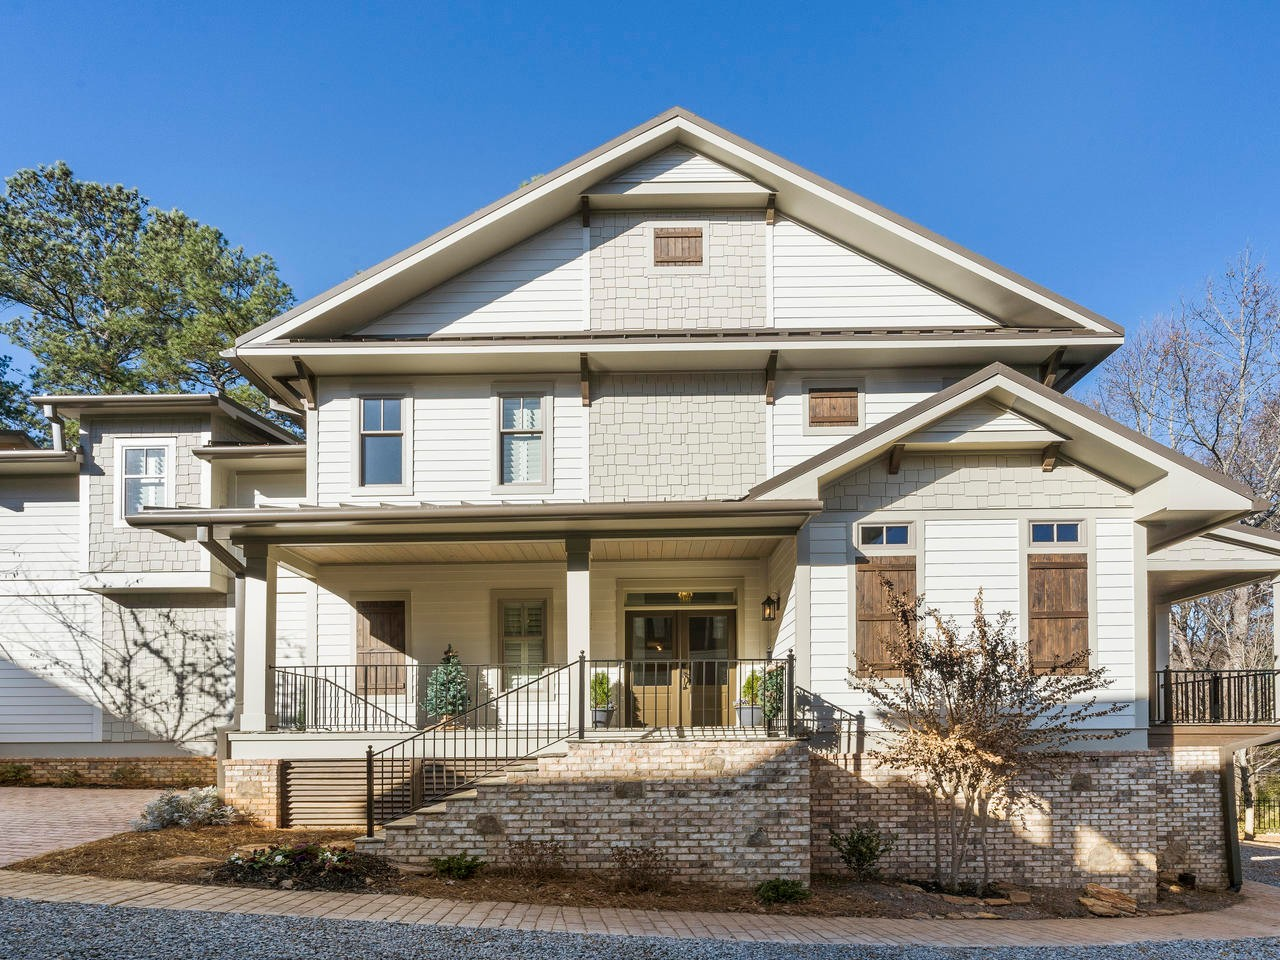 LEED Platinum Certified Custom Home In The Heart of Historic Roswell!